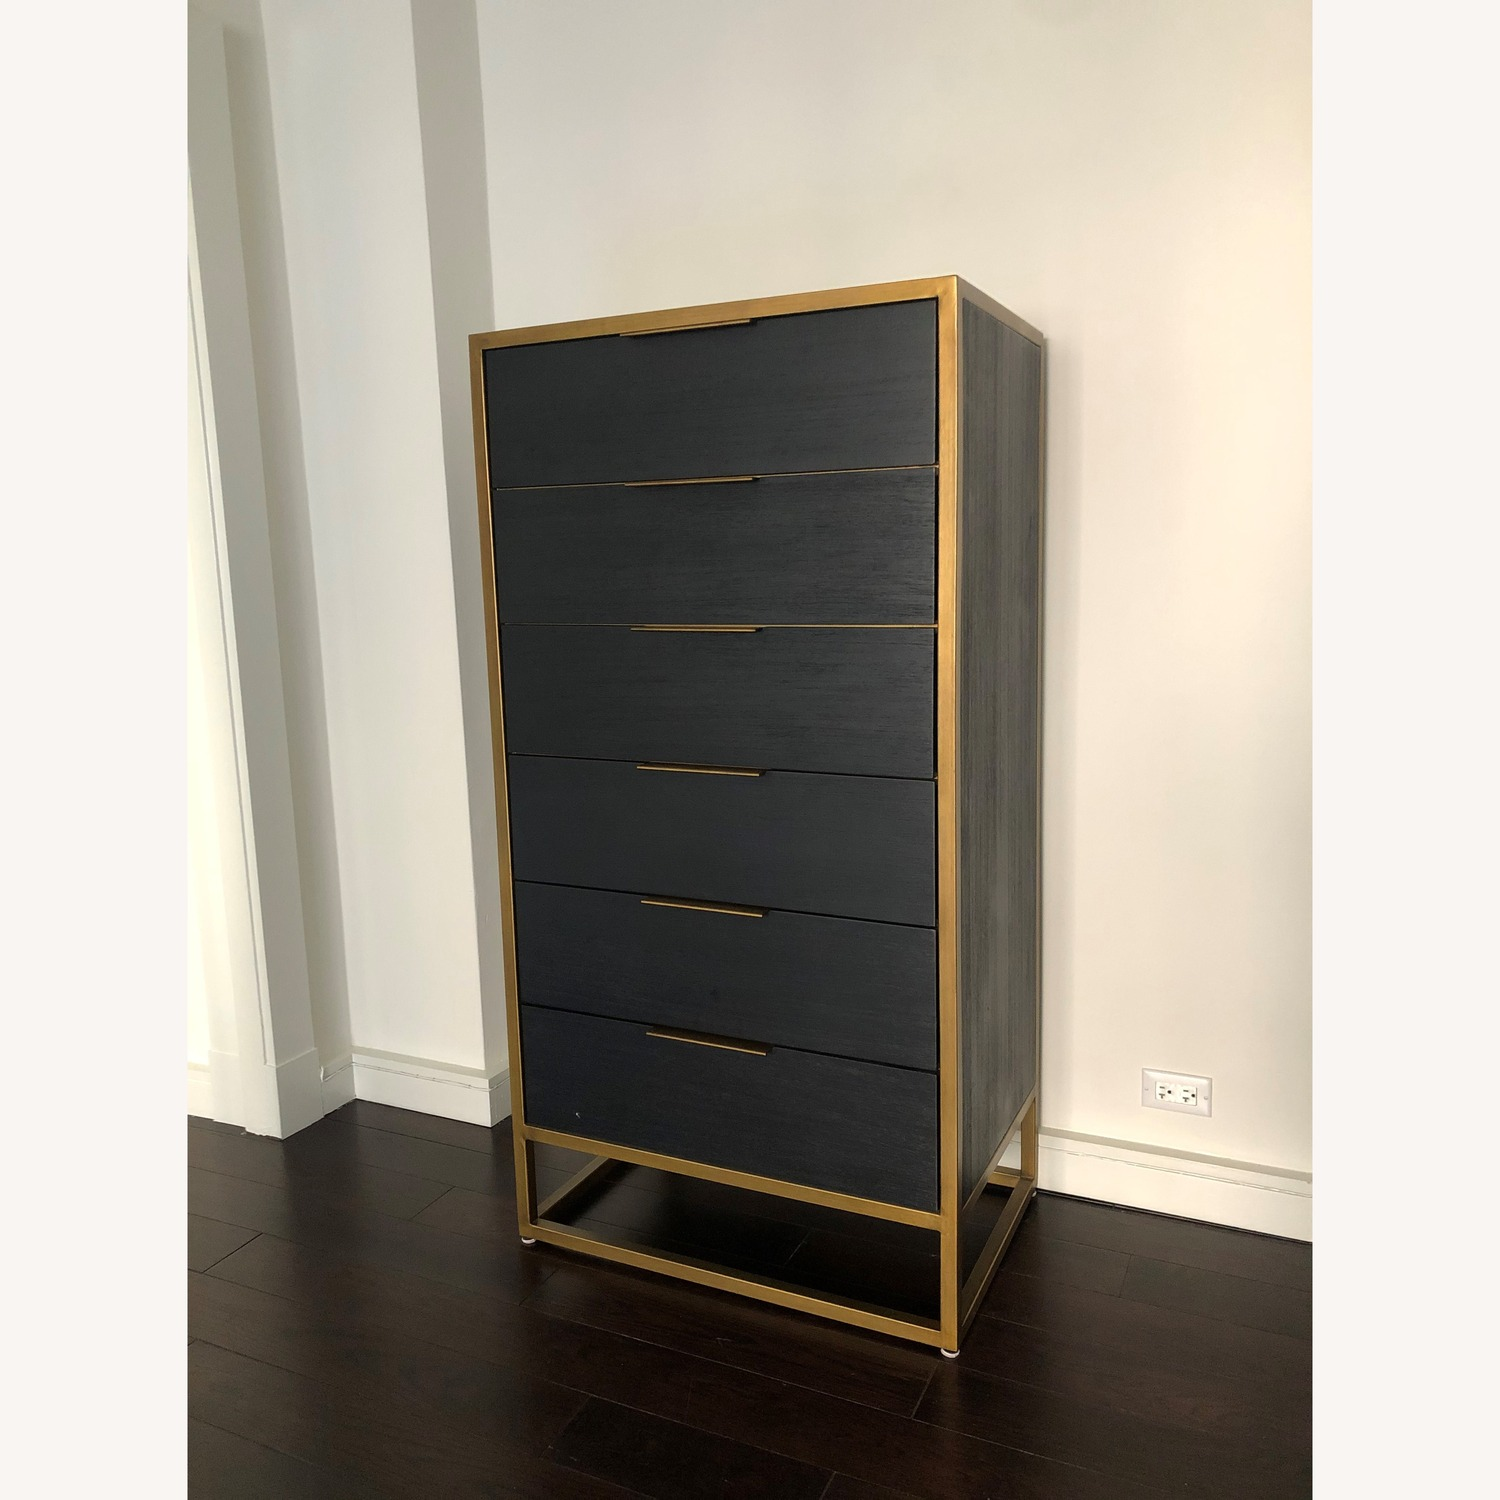 Crate & Barrel Oxford Black 6-Drawer Tall Chest - image-1